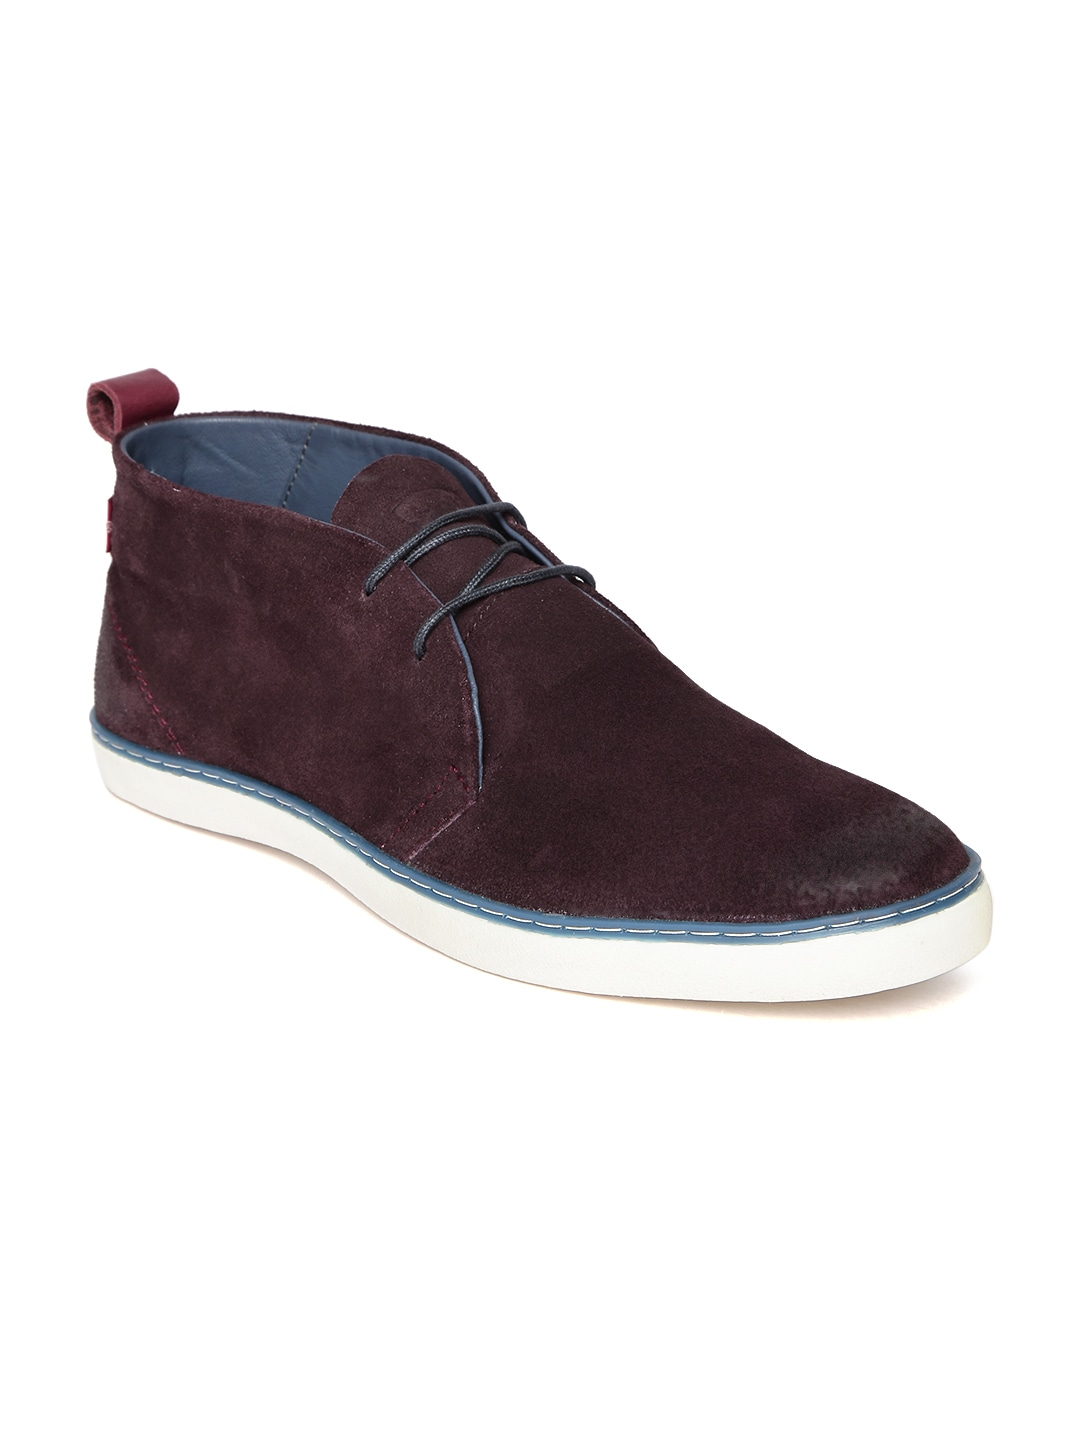 28e031435 Casual Shoes For Men - Buy Casual   Flat Shoes For Men